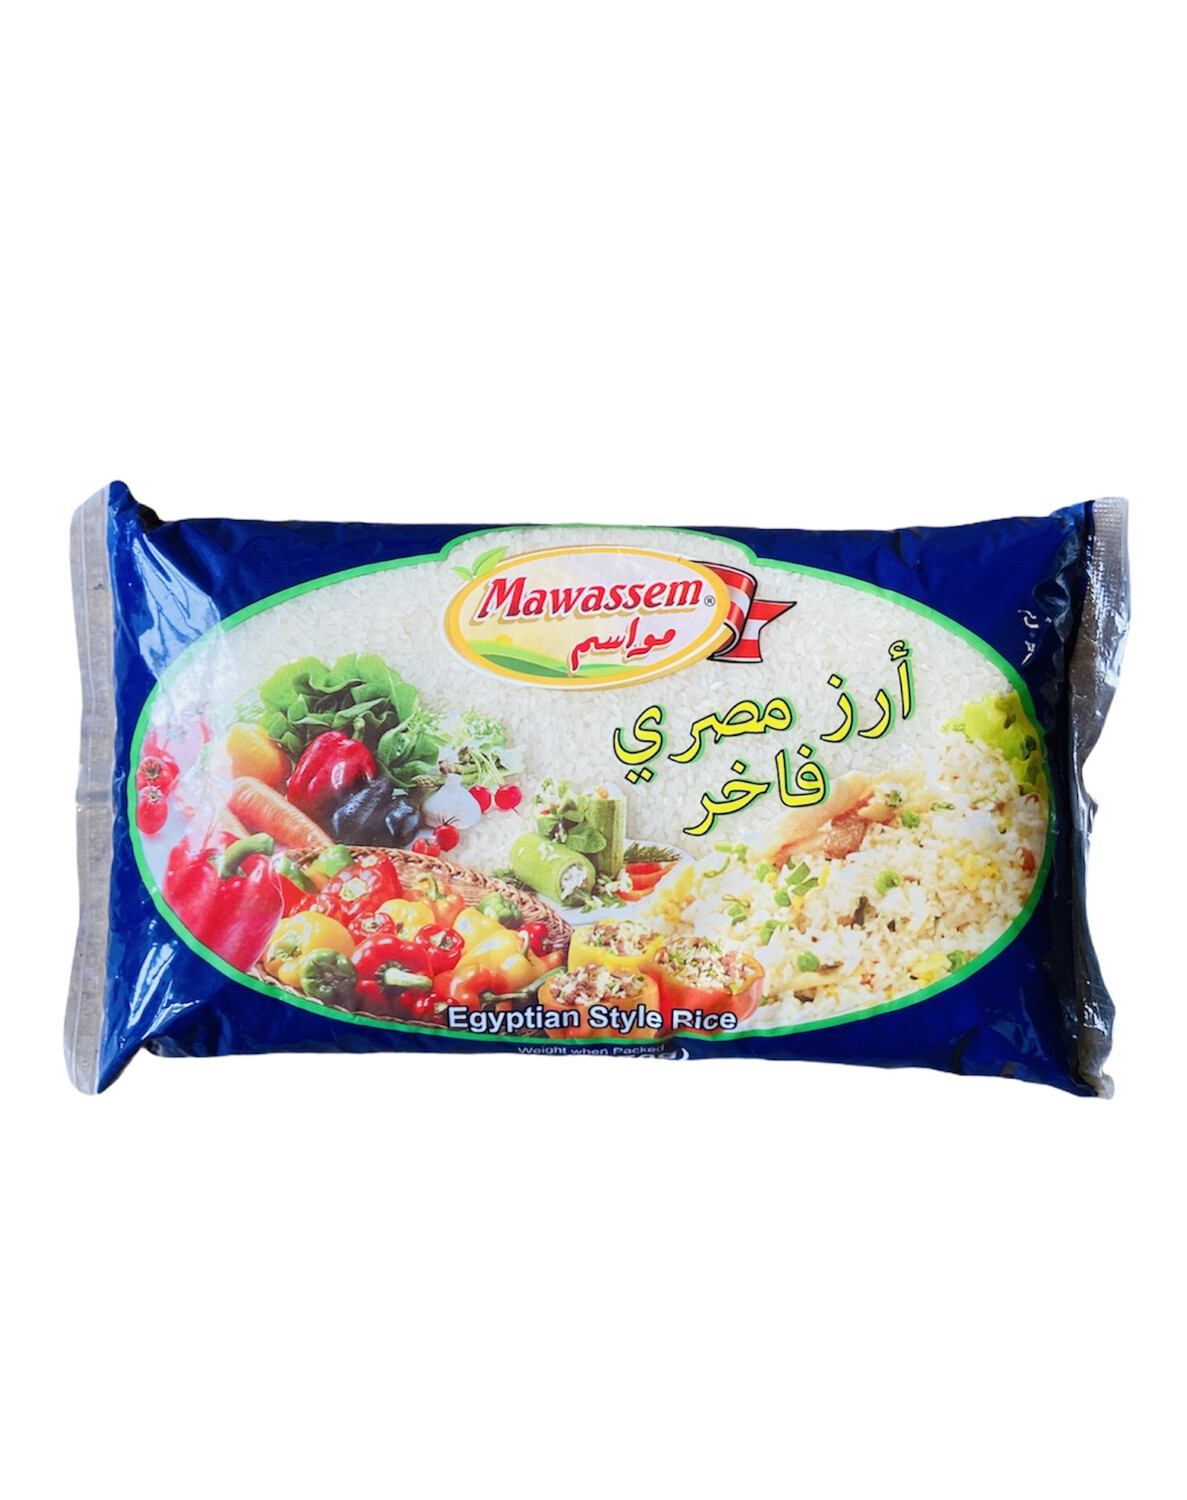 Mawassem Egyptian Rice 8x5lb